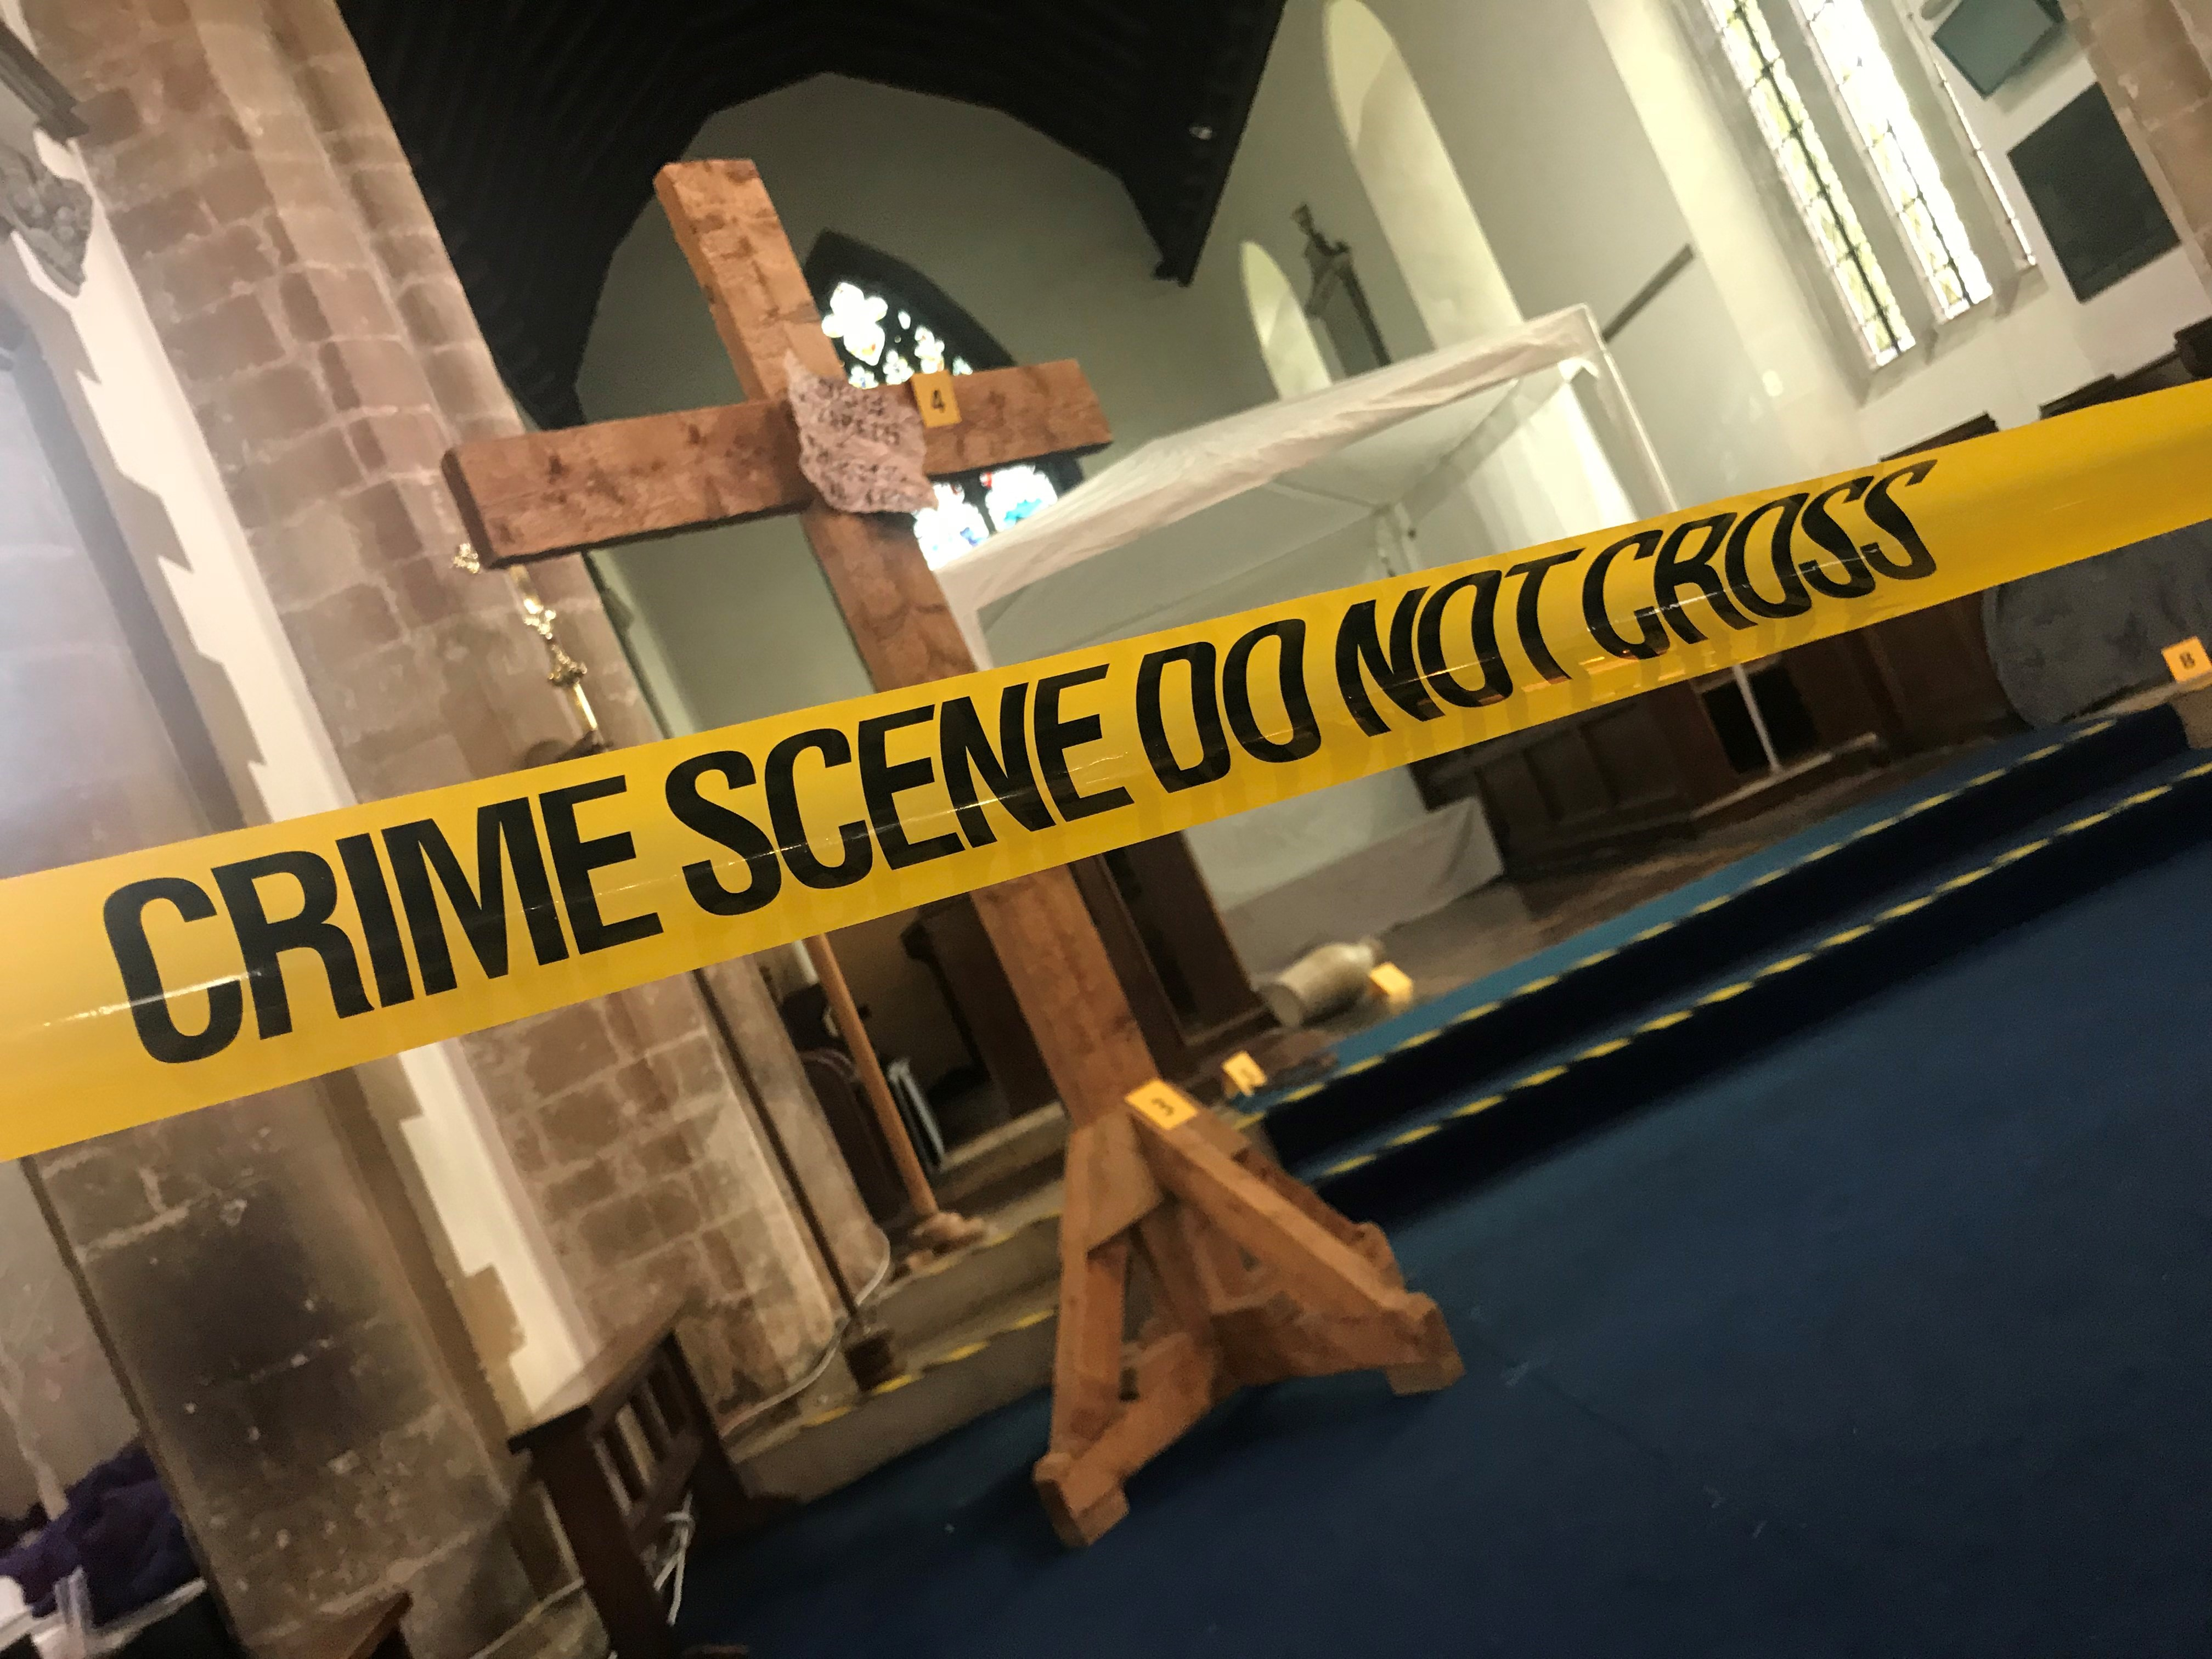 Crime scene…what do the clues suggest might have happened? (Click to enlarge)